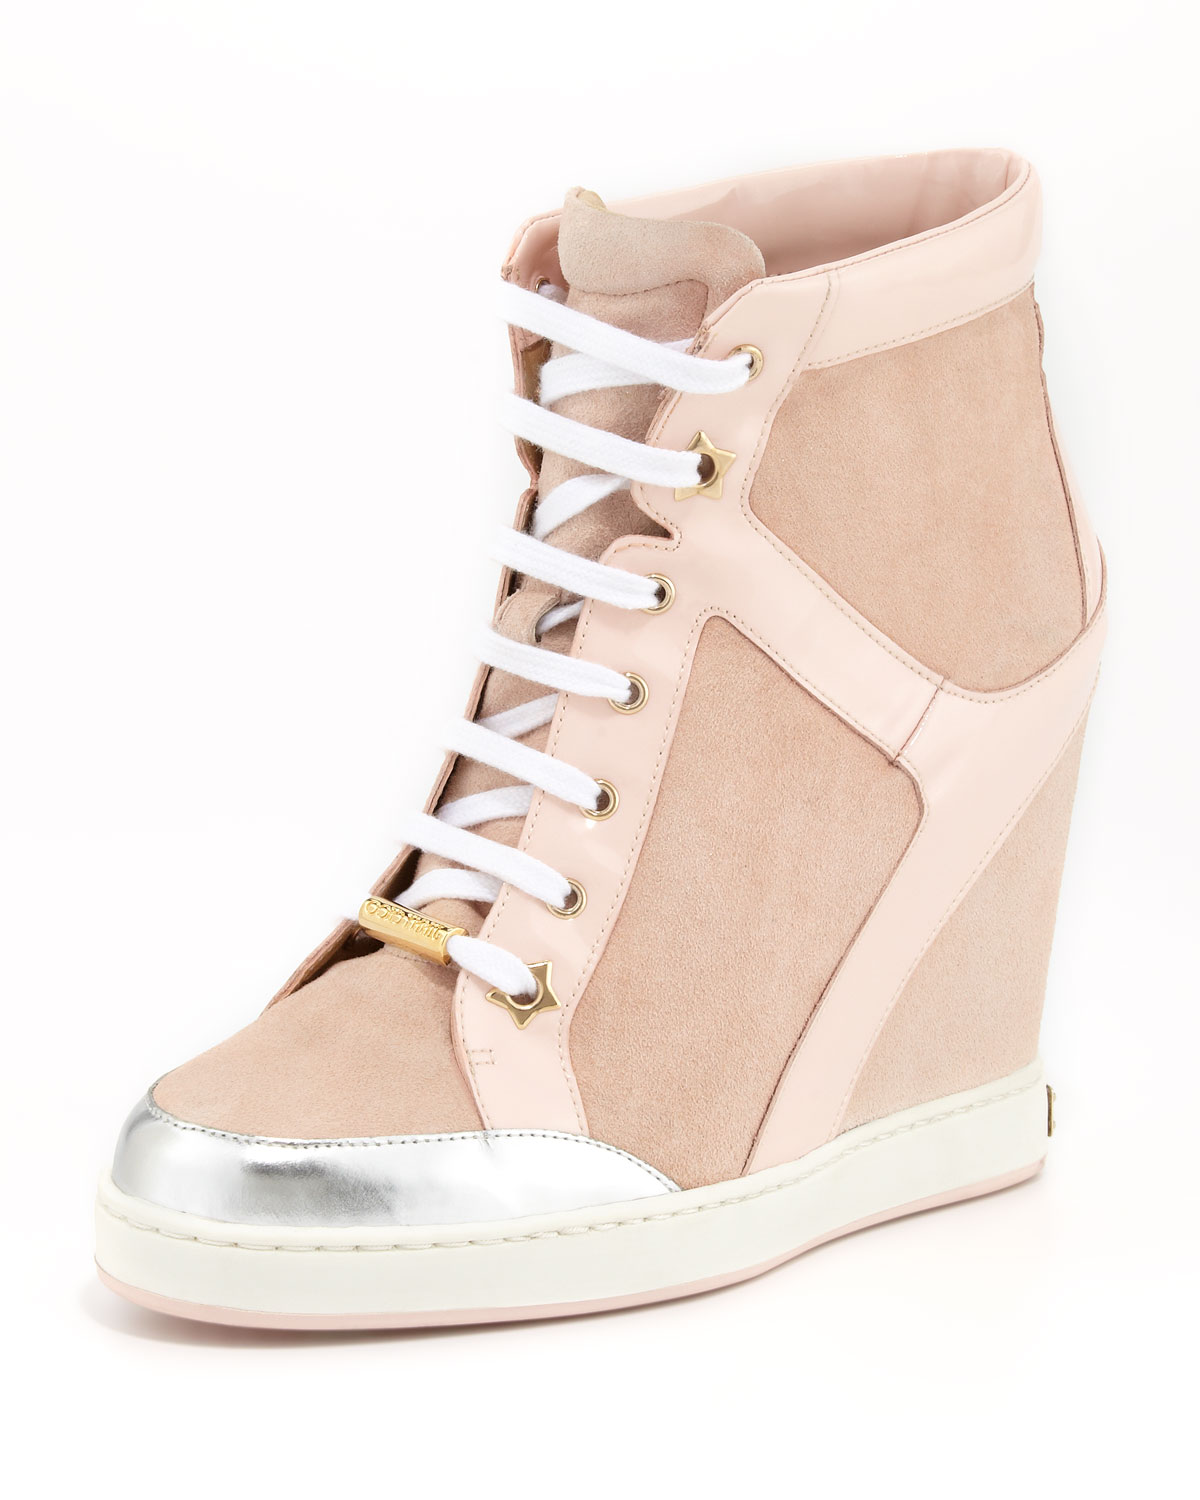 Lyst - Jimmy Choo Panama Suedepatent Wedge Sneaker Light ...